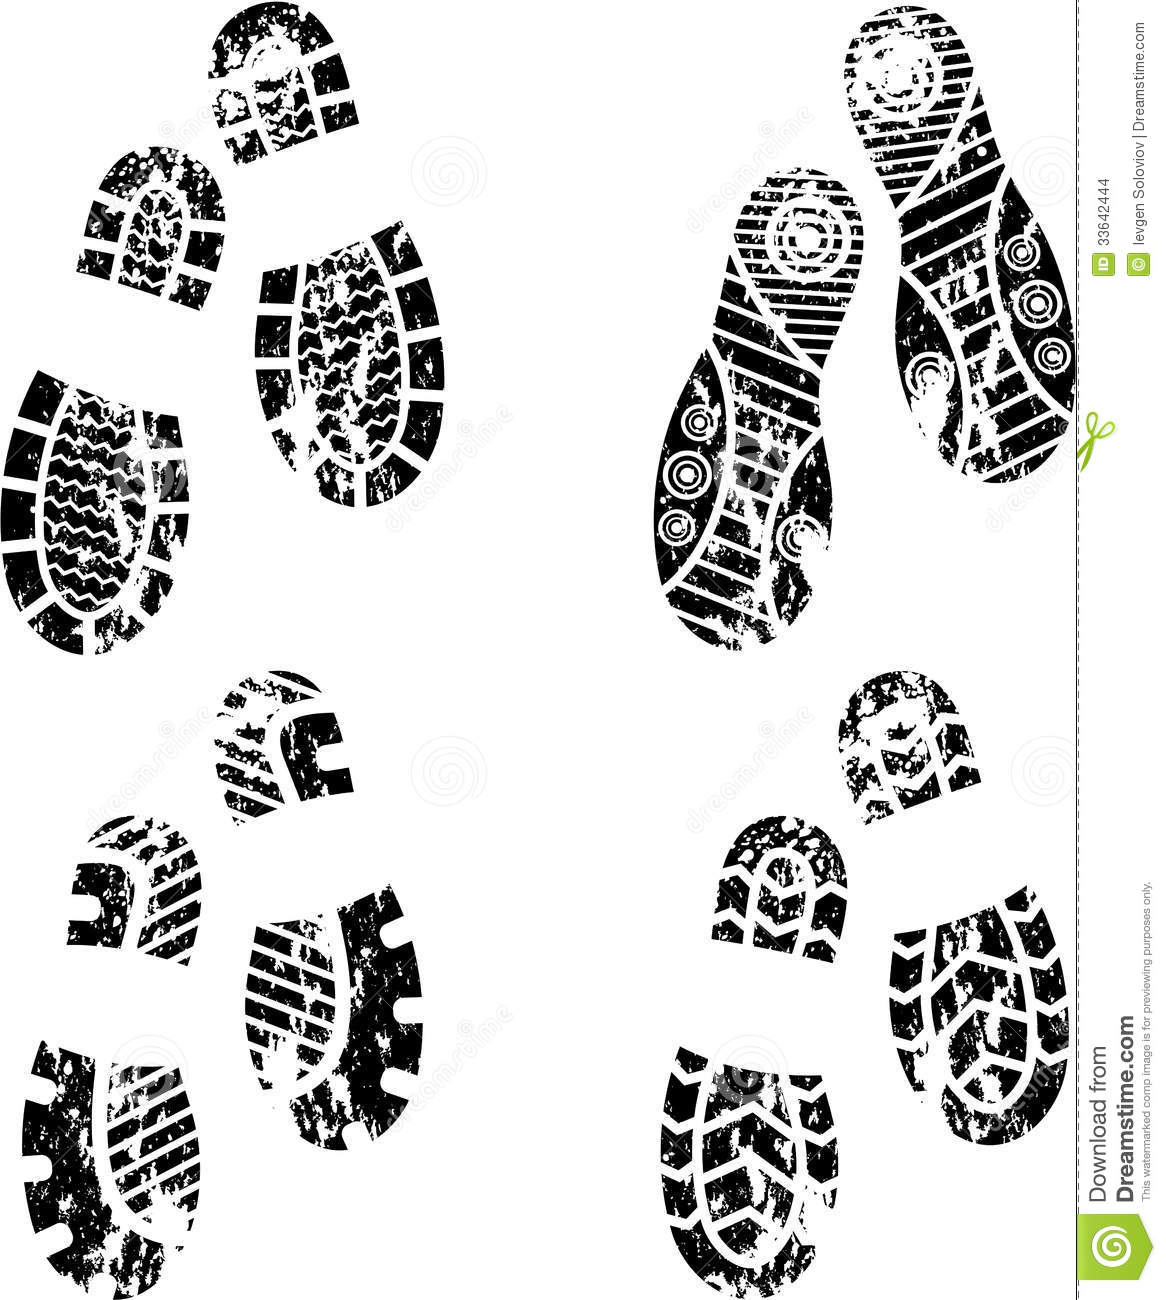 Shoes silhouette stock vector. Illustration of dirty ...